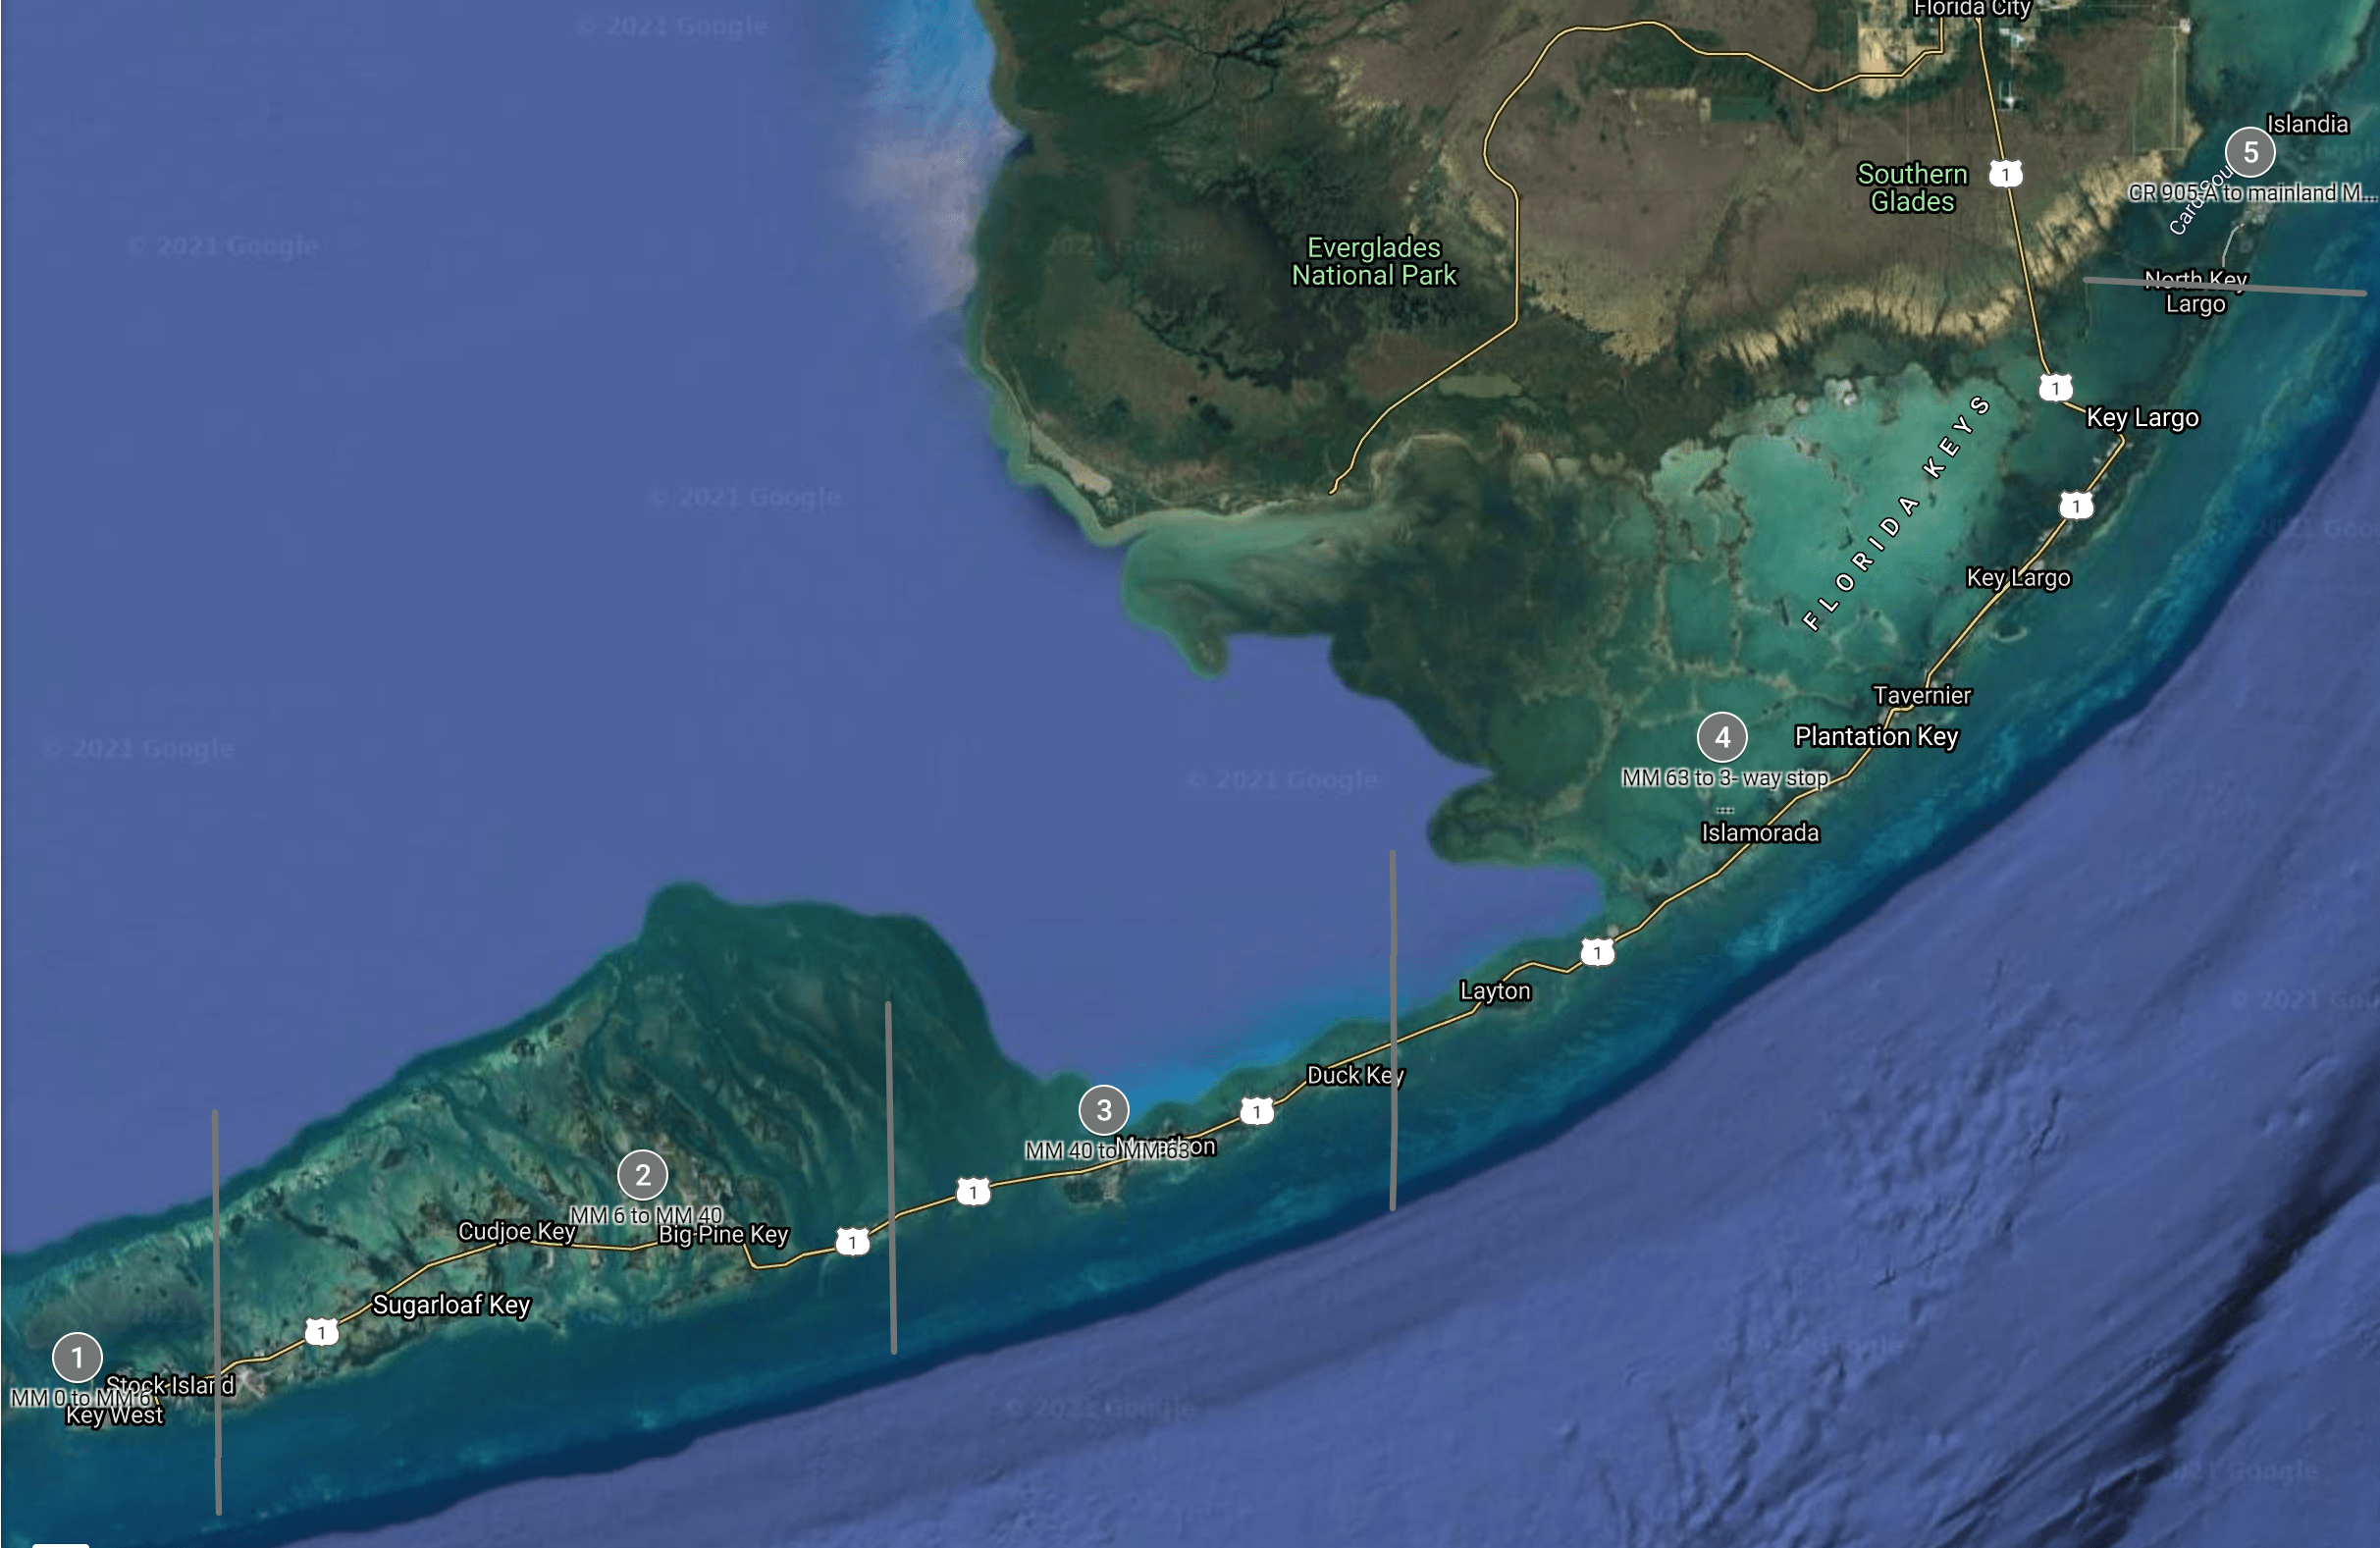 Florida Keys Zone Map